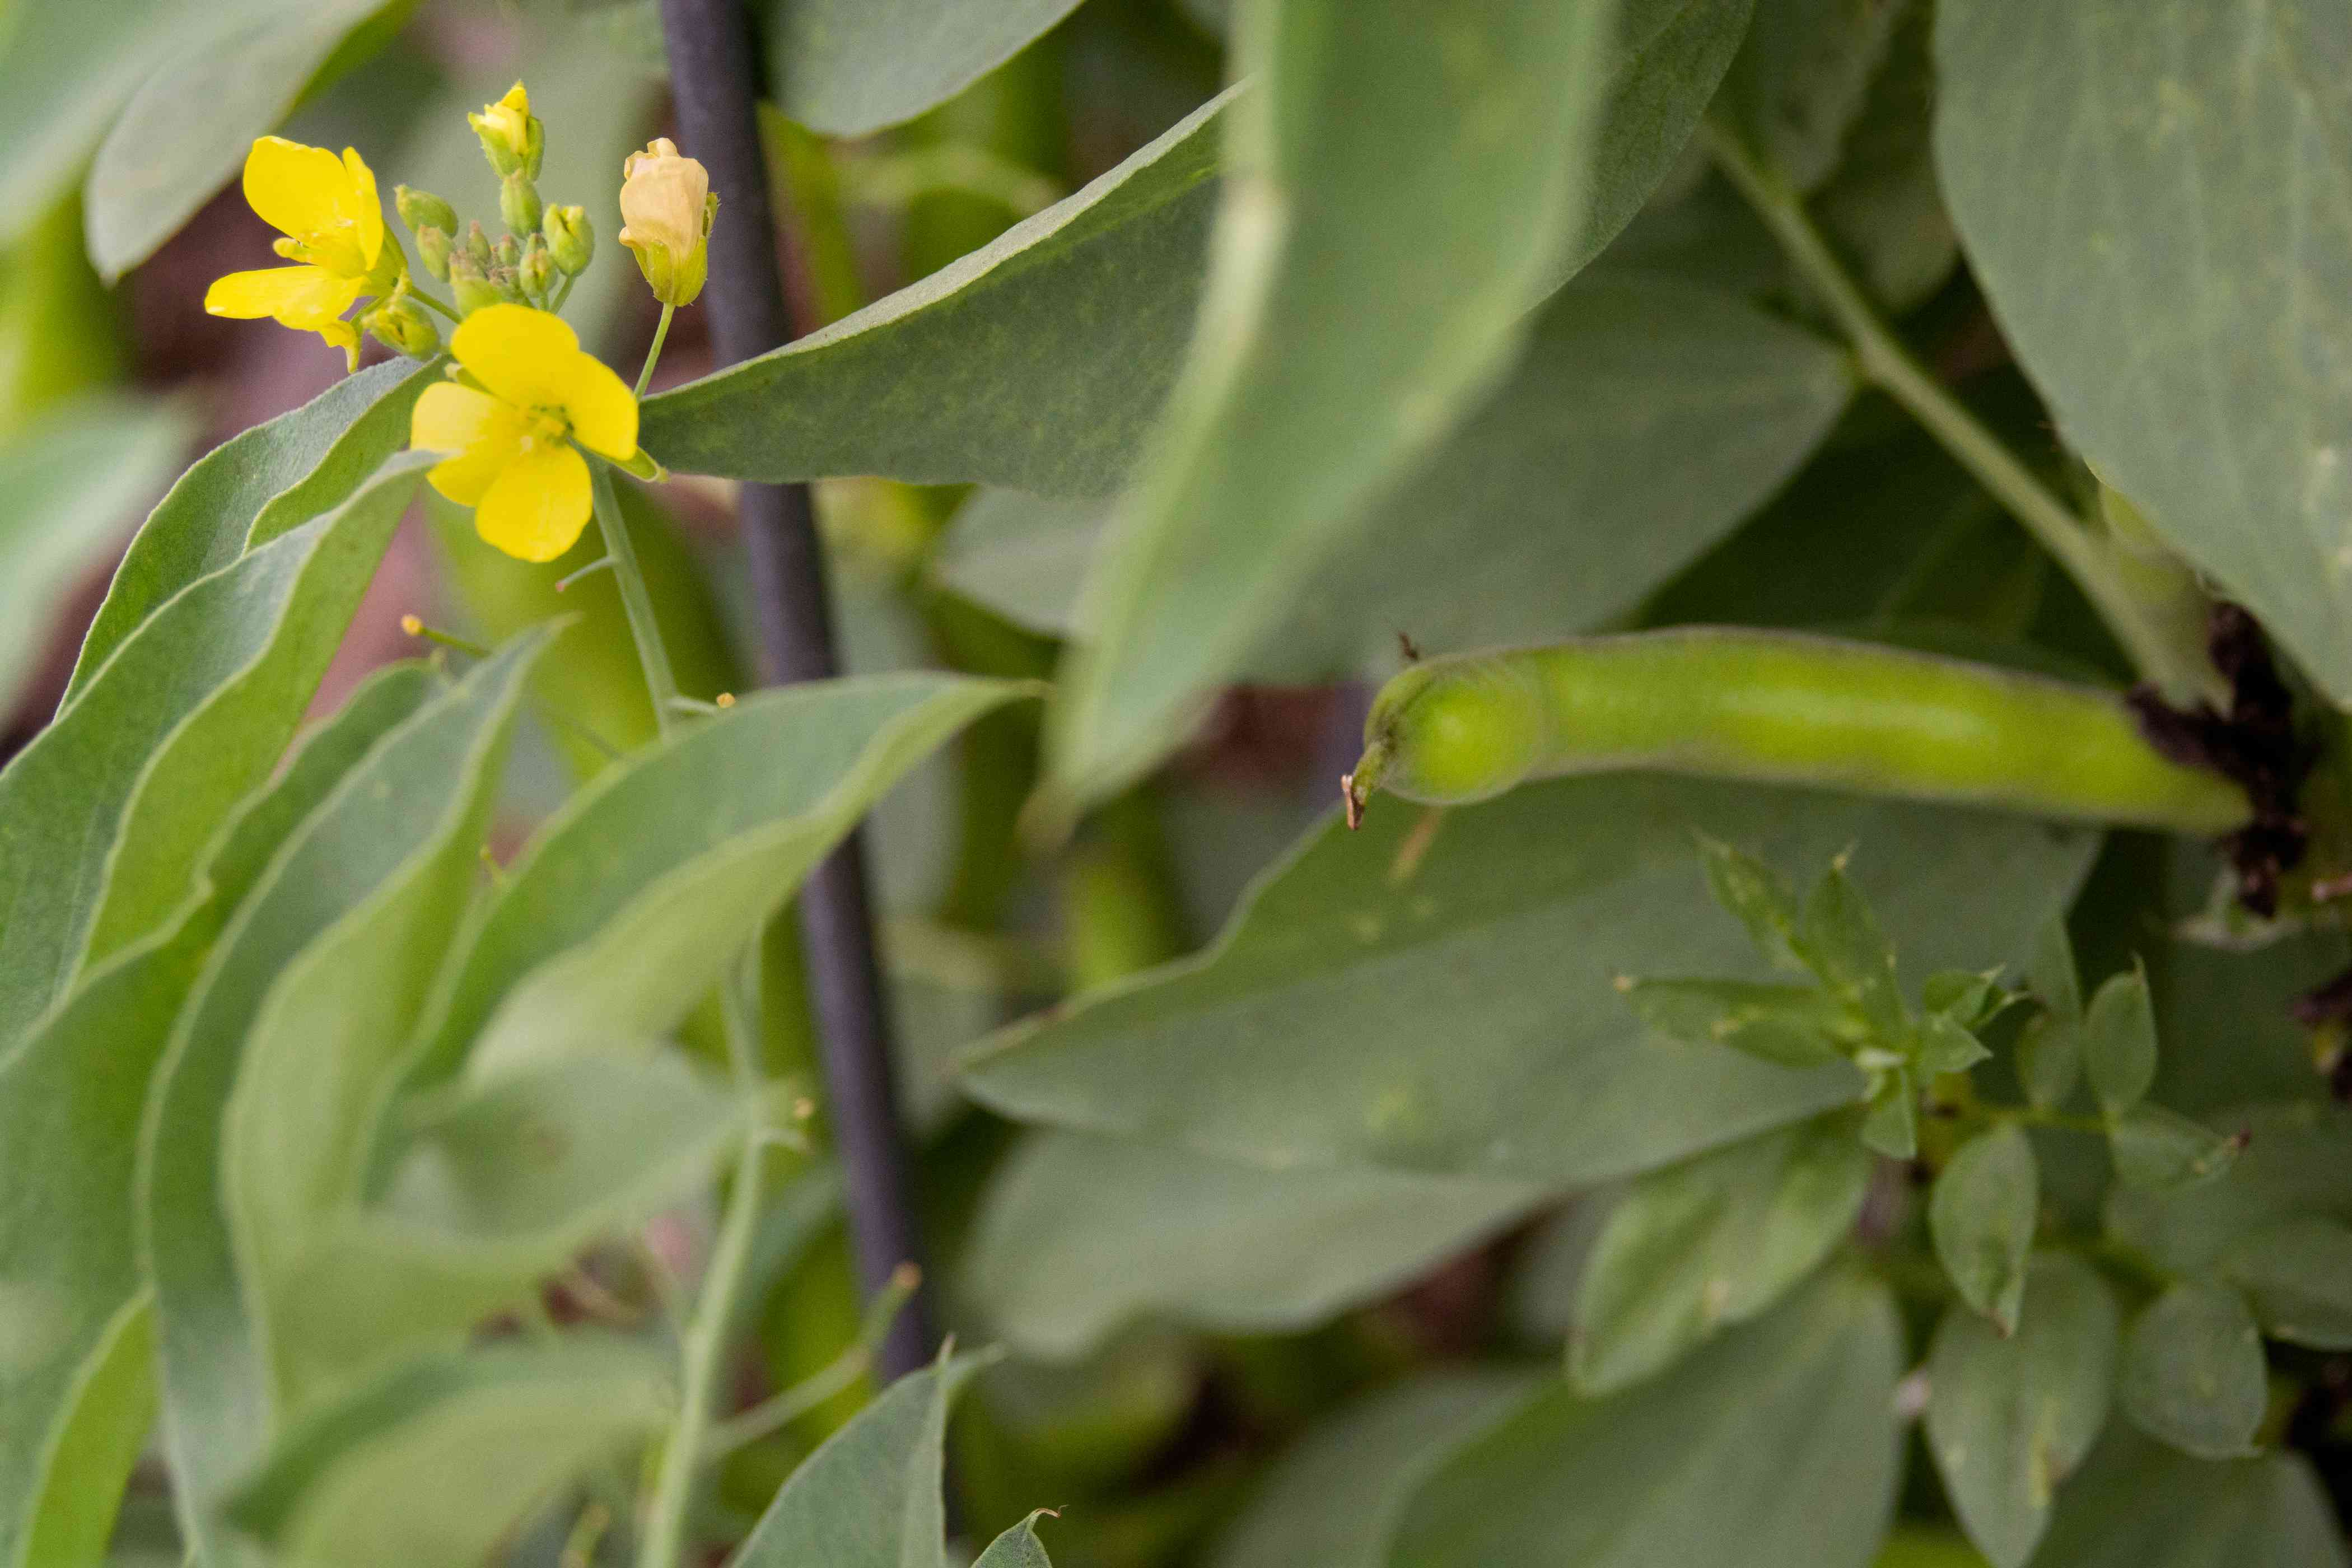 Fava bean plant with green pod next to small yellow flowers closeup